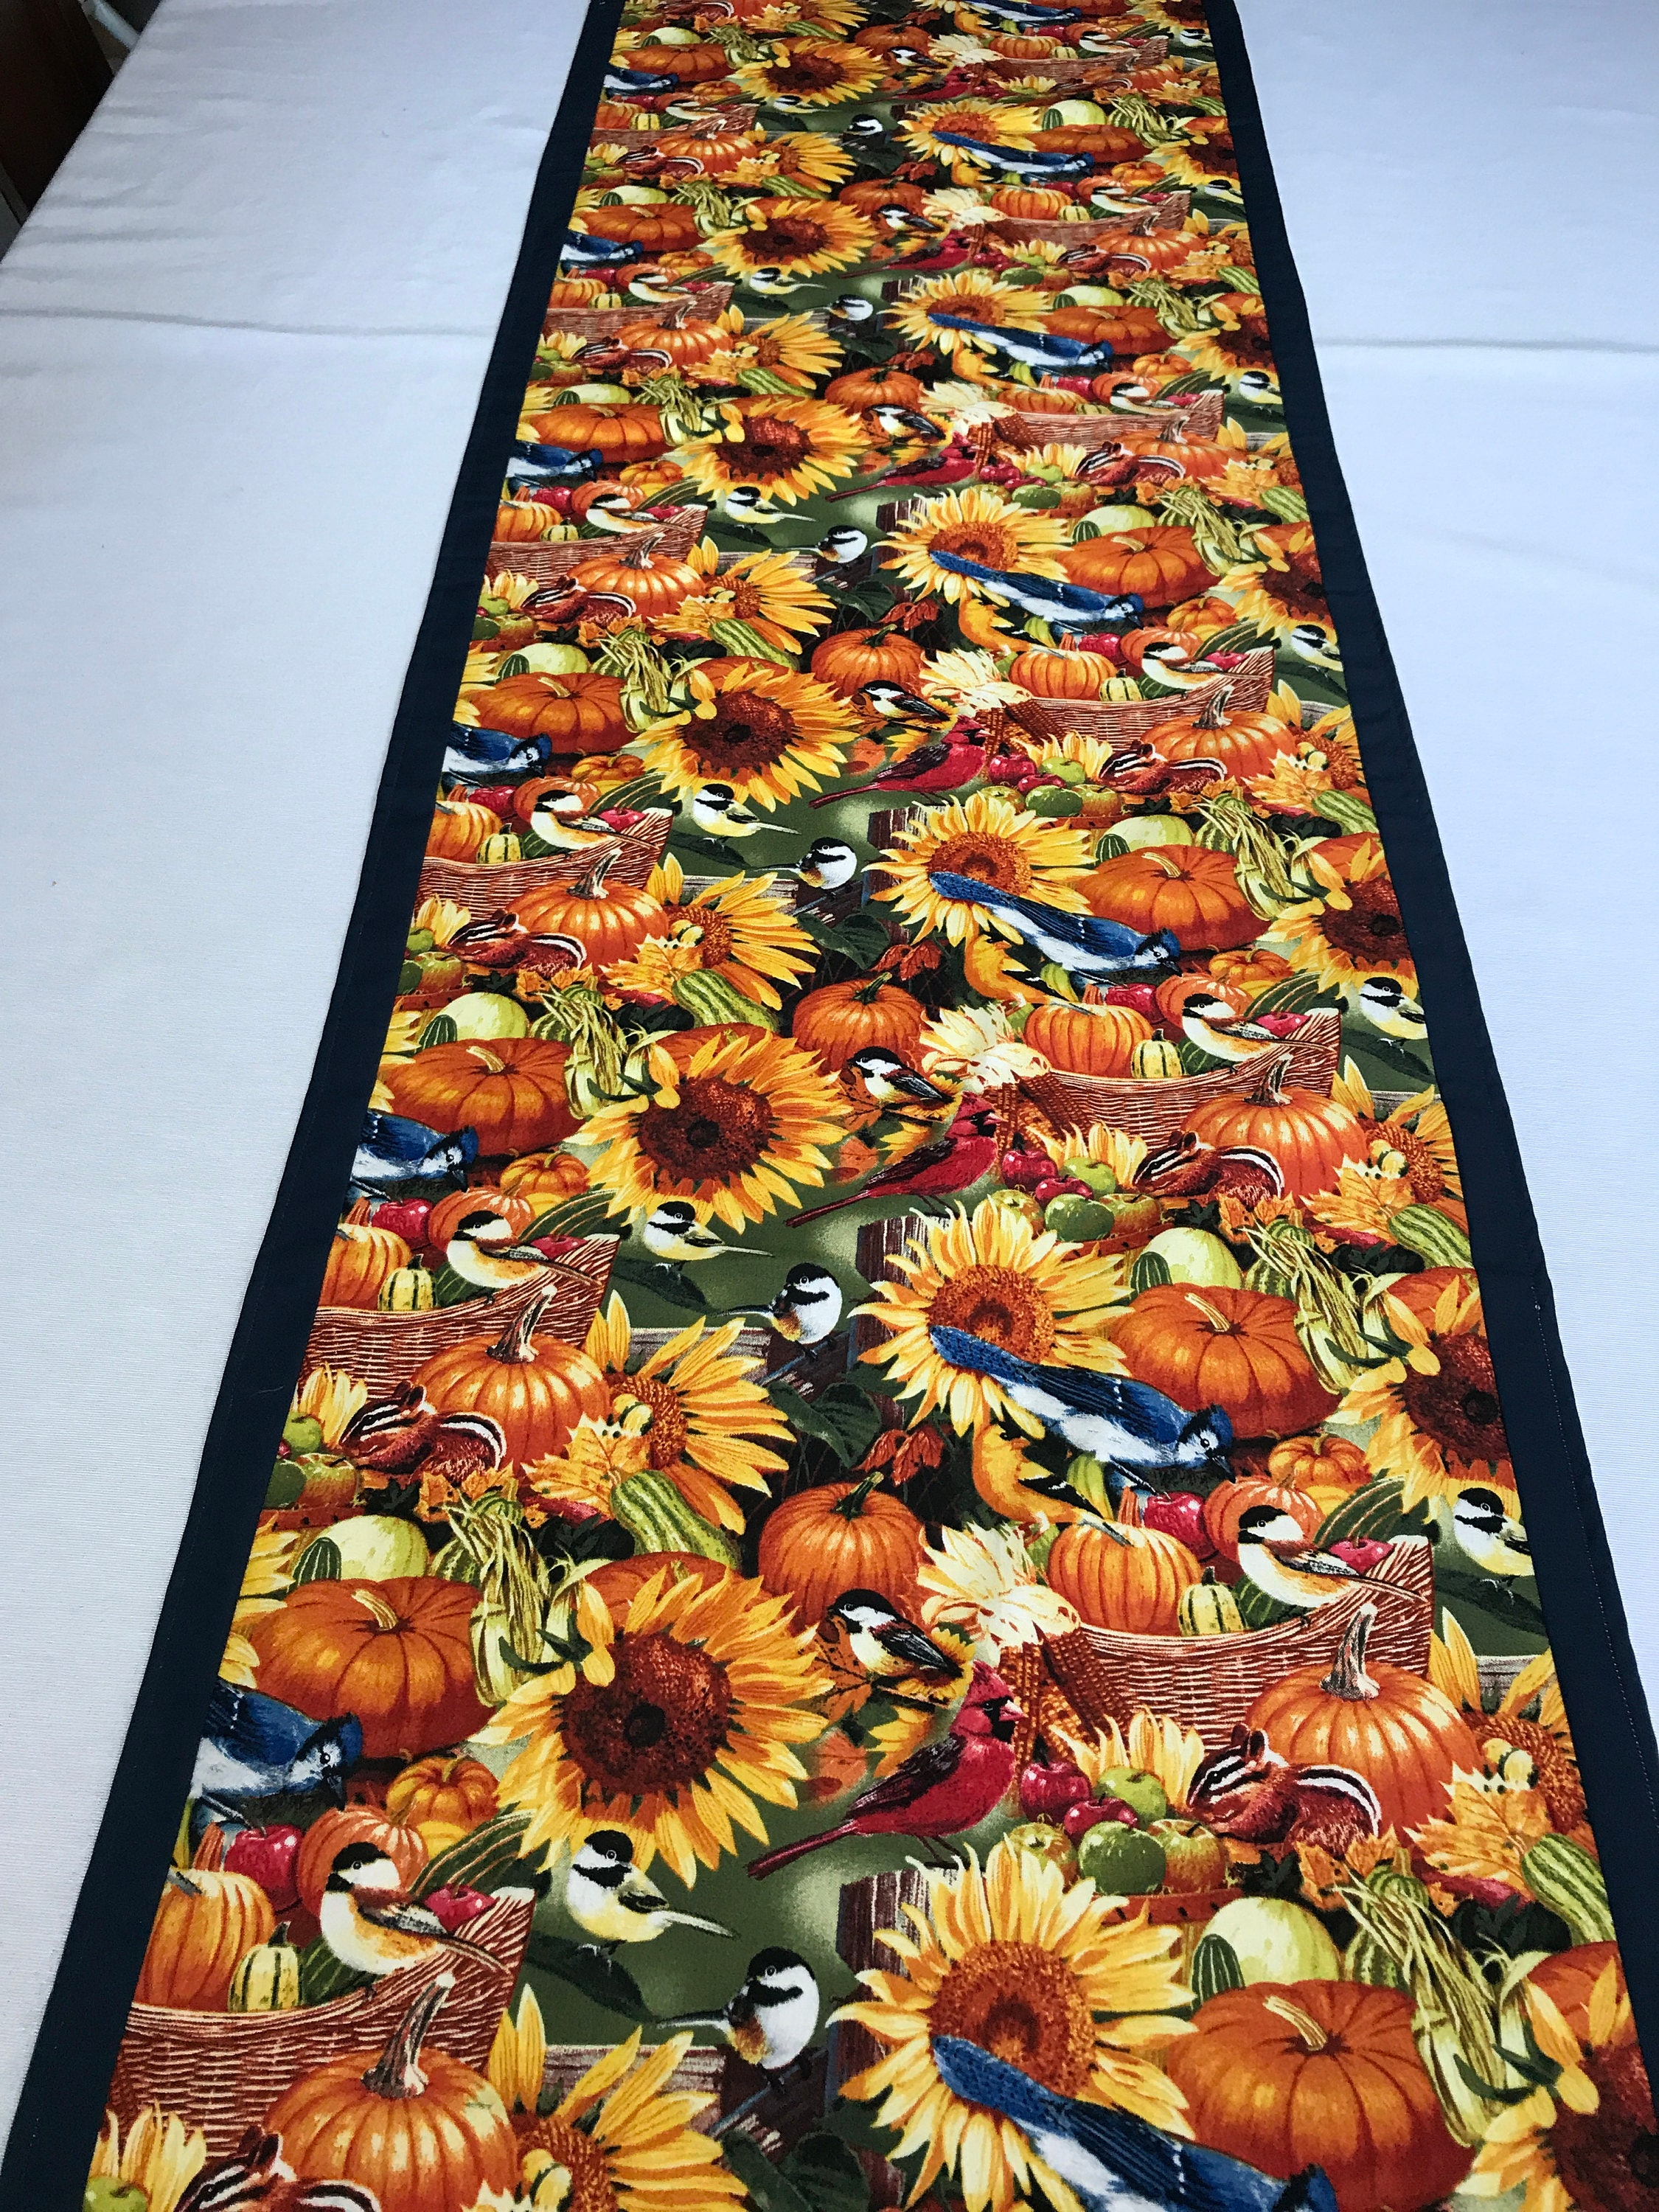 Colorful Table Runner, Floral Table Runner, Fall Table Runner, Autumn Table  Runner, Fall Decor, Dining Table Runner, Autumn Decor